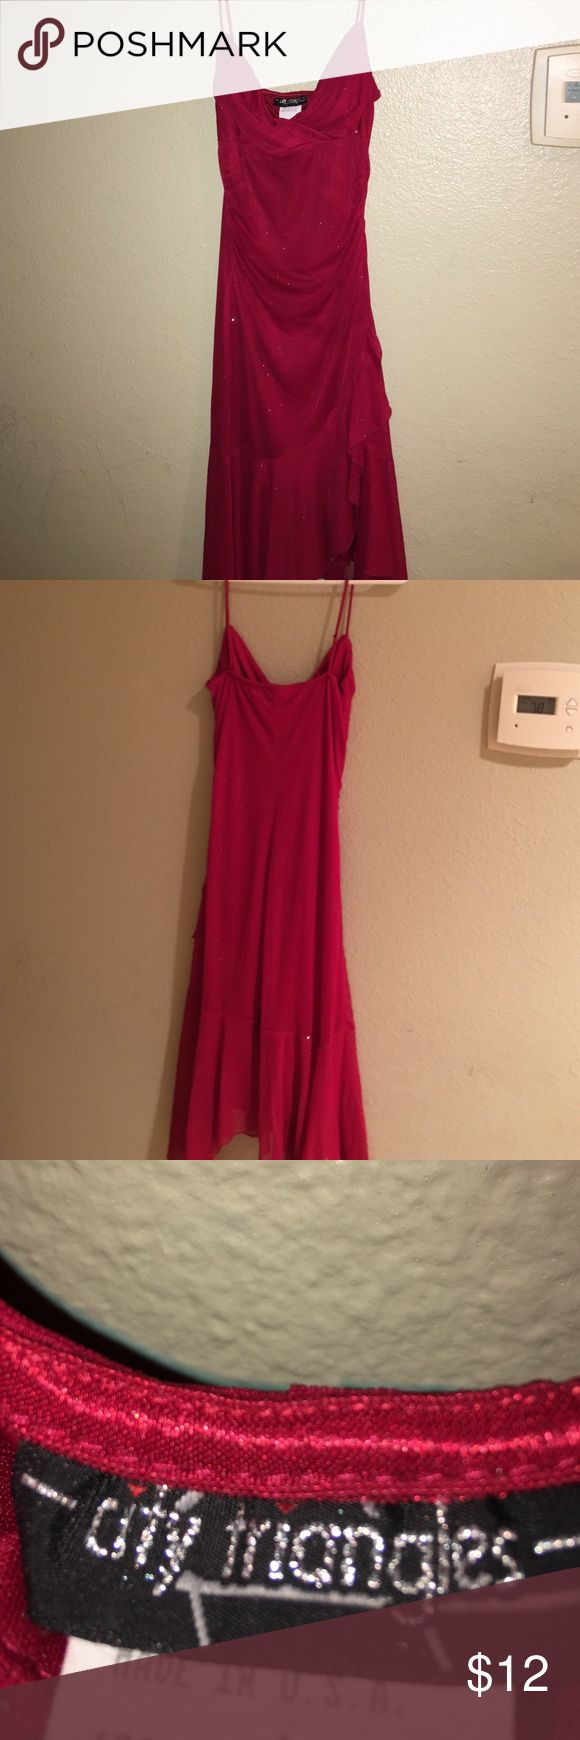 City Triangles Petite formal dress great condition, made for a very petite woman City Triangles Dresses Prom